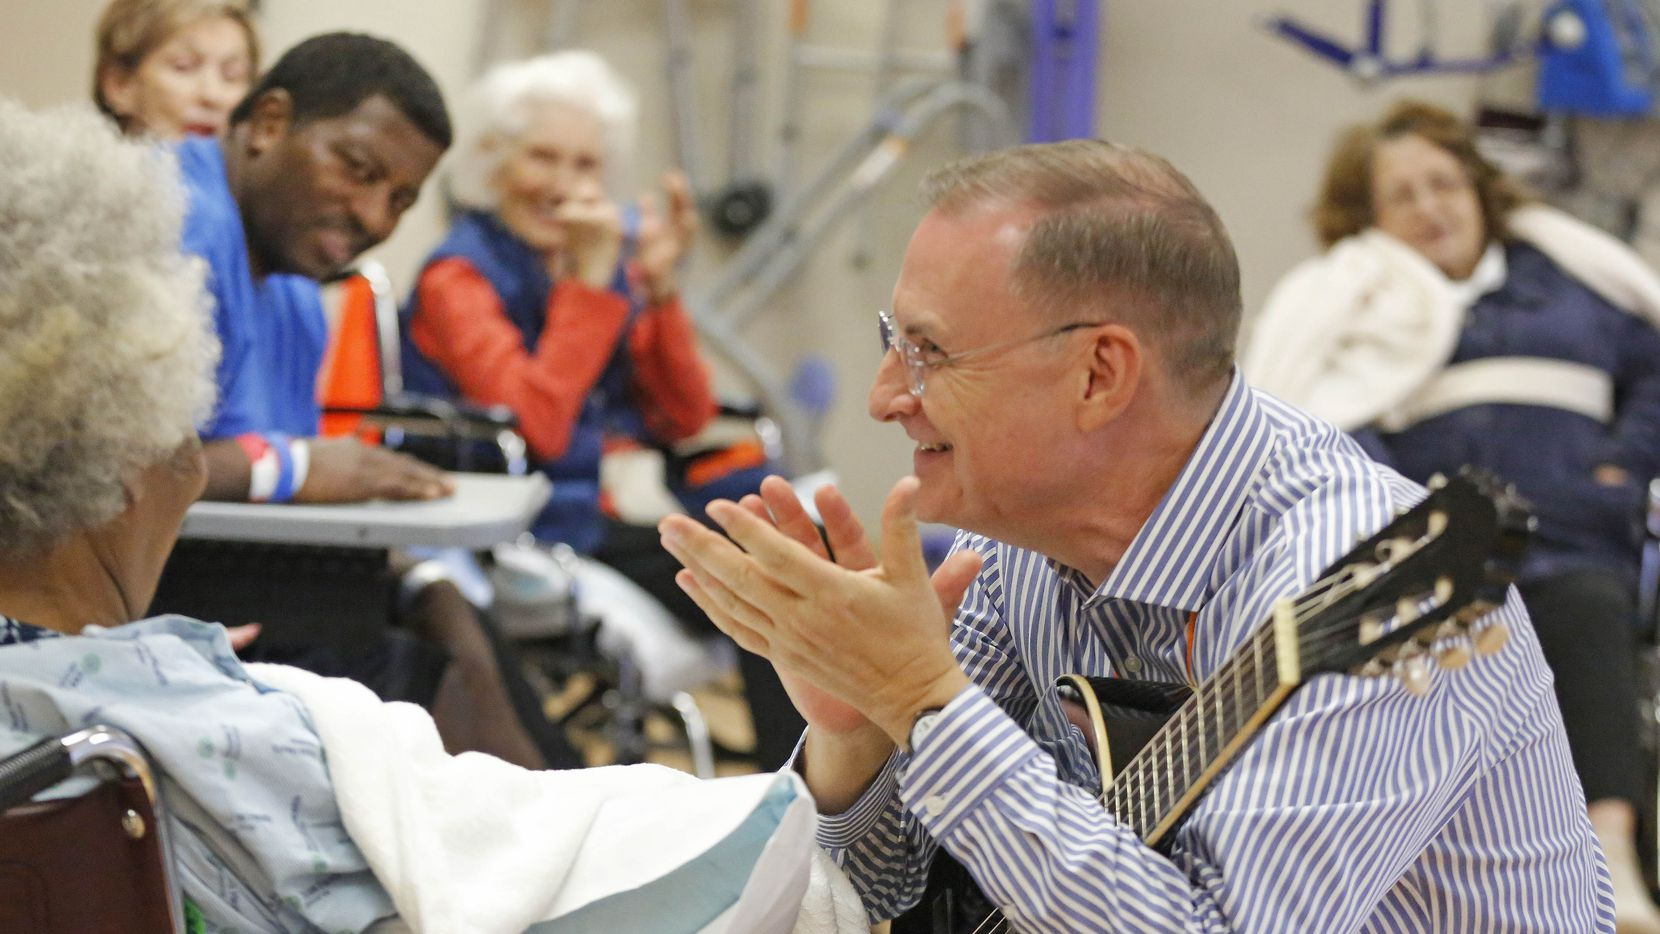 Michael Richardson, right, plays guitar and sings during a music therapy clinic at Texas Health Presbyterian Hospital Dallas, which holds the class for people with Parkinson's disease, traumatic brain injury and stroke.